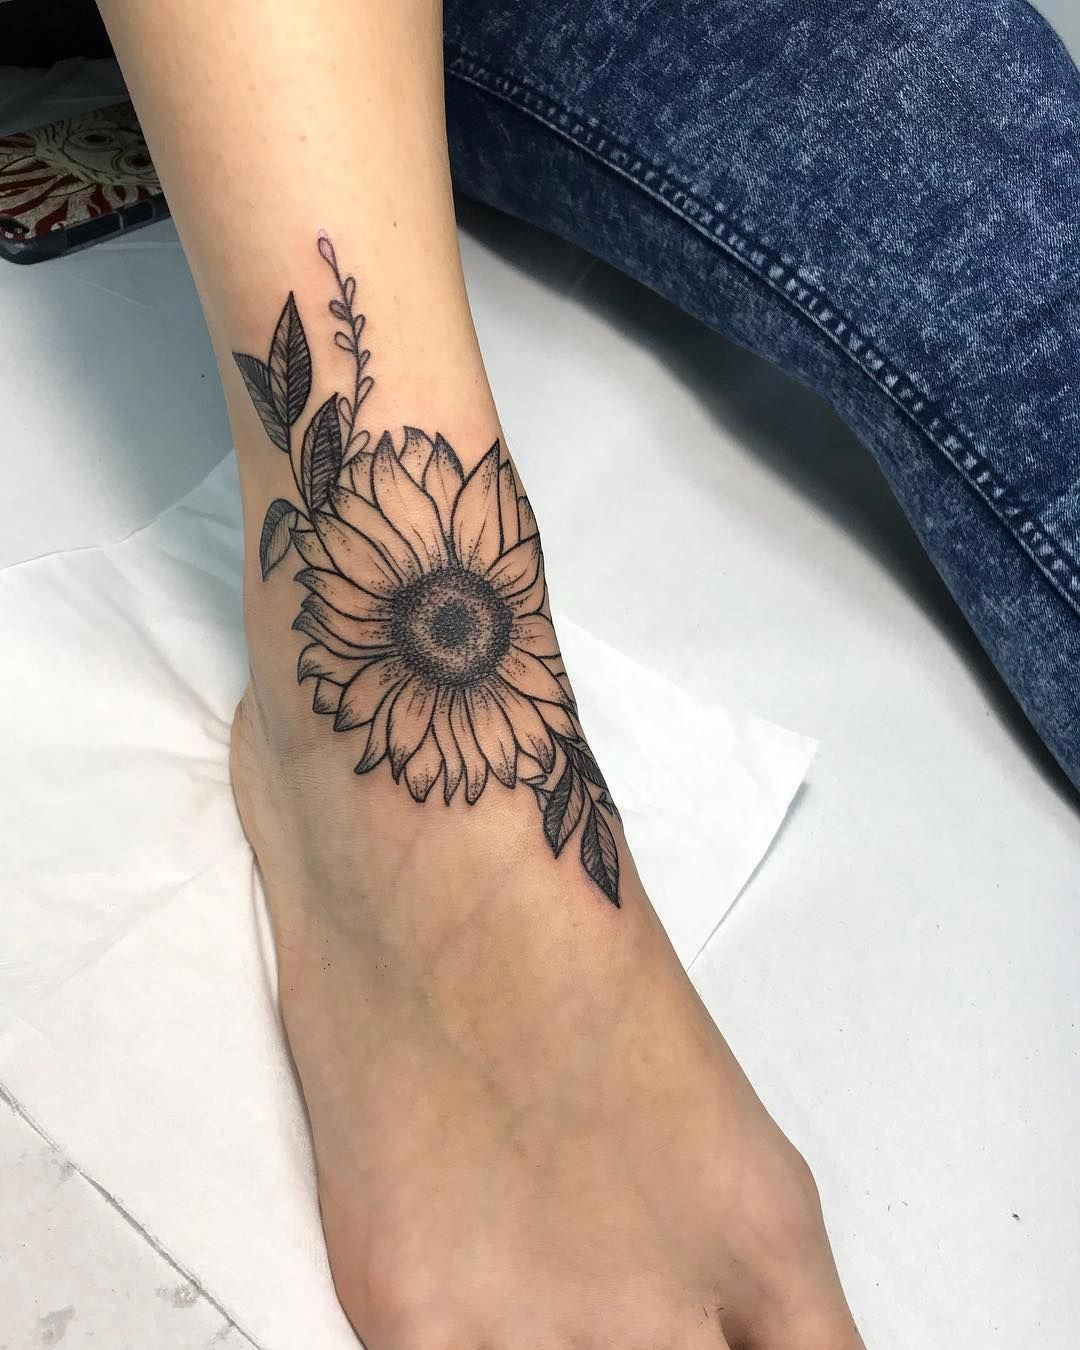 unique foot tattoos Foottattoos Sunflower foot tattoos